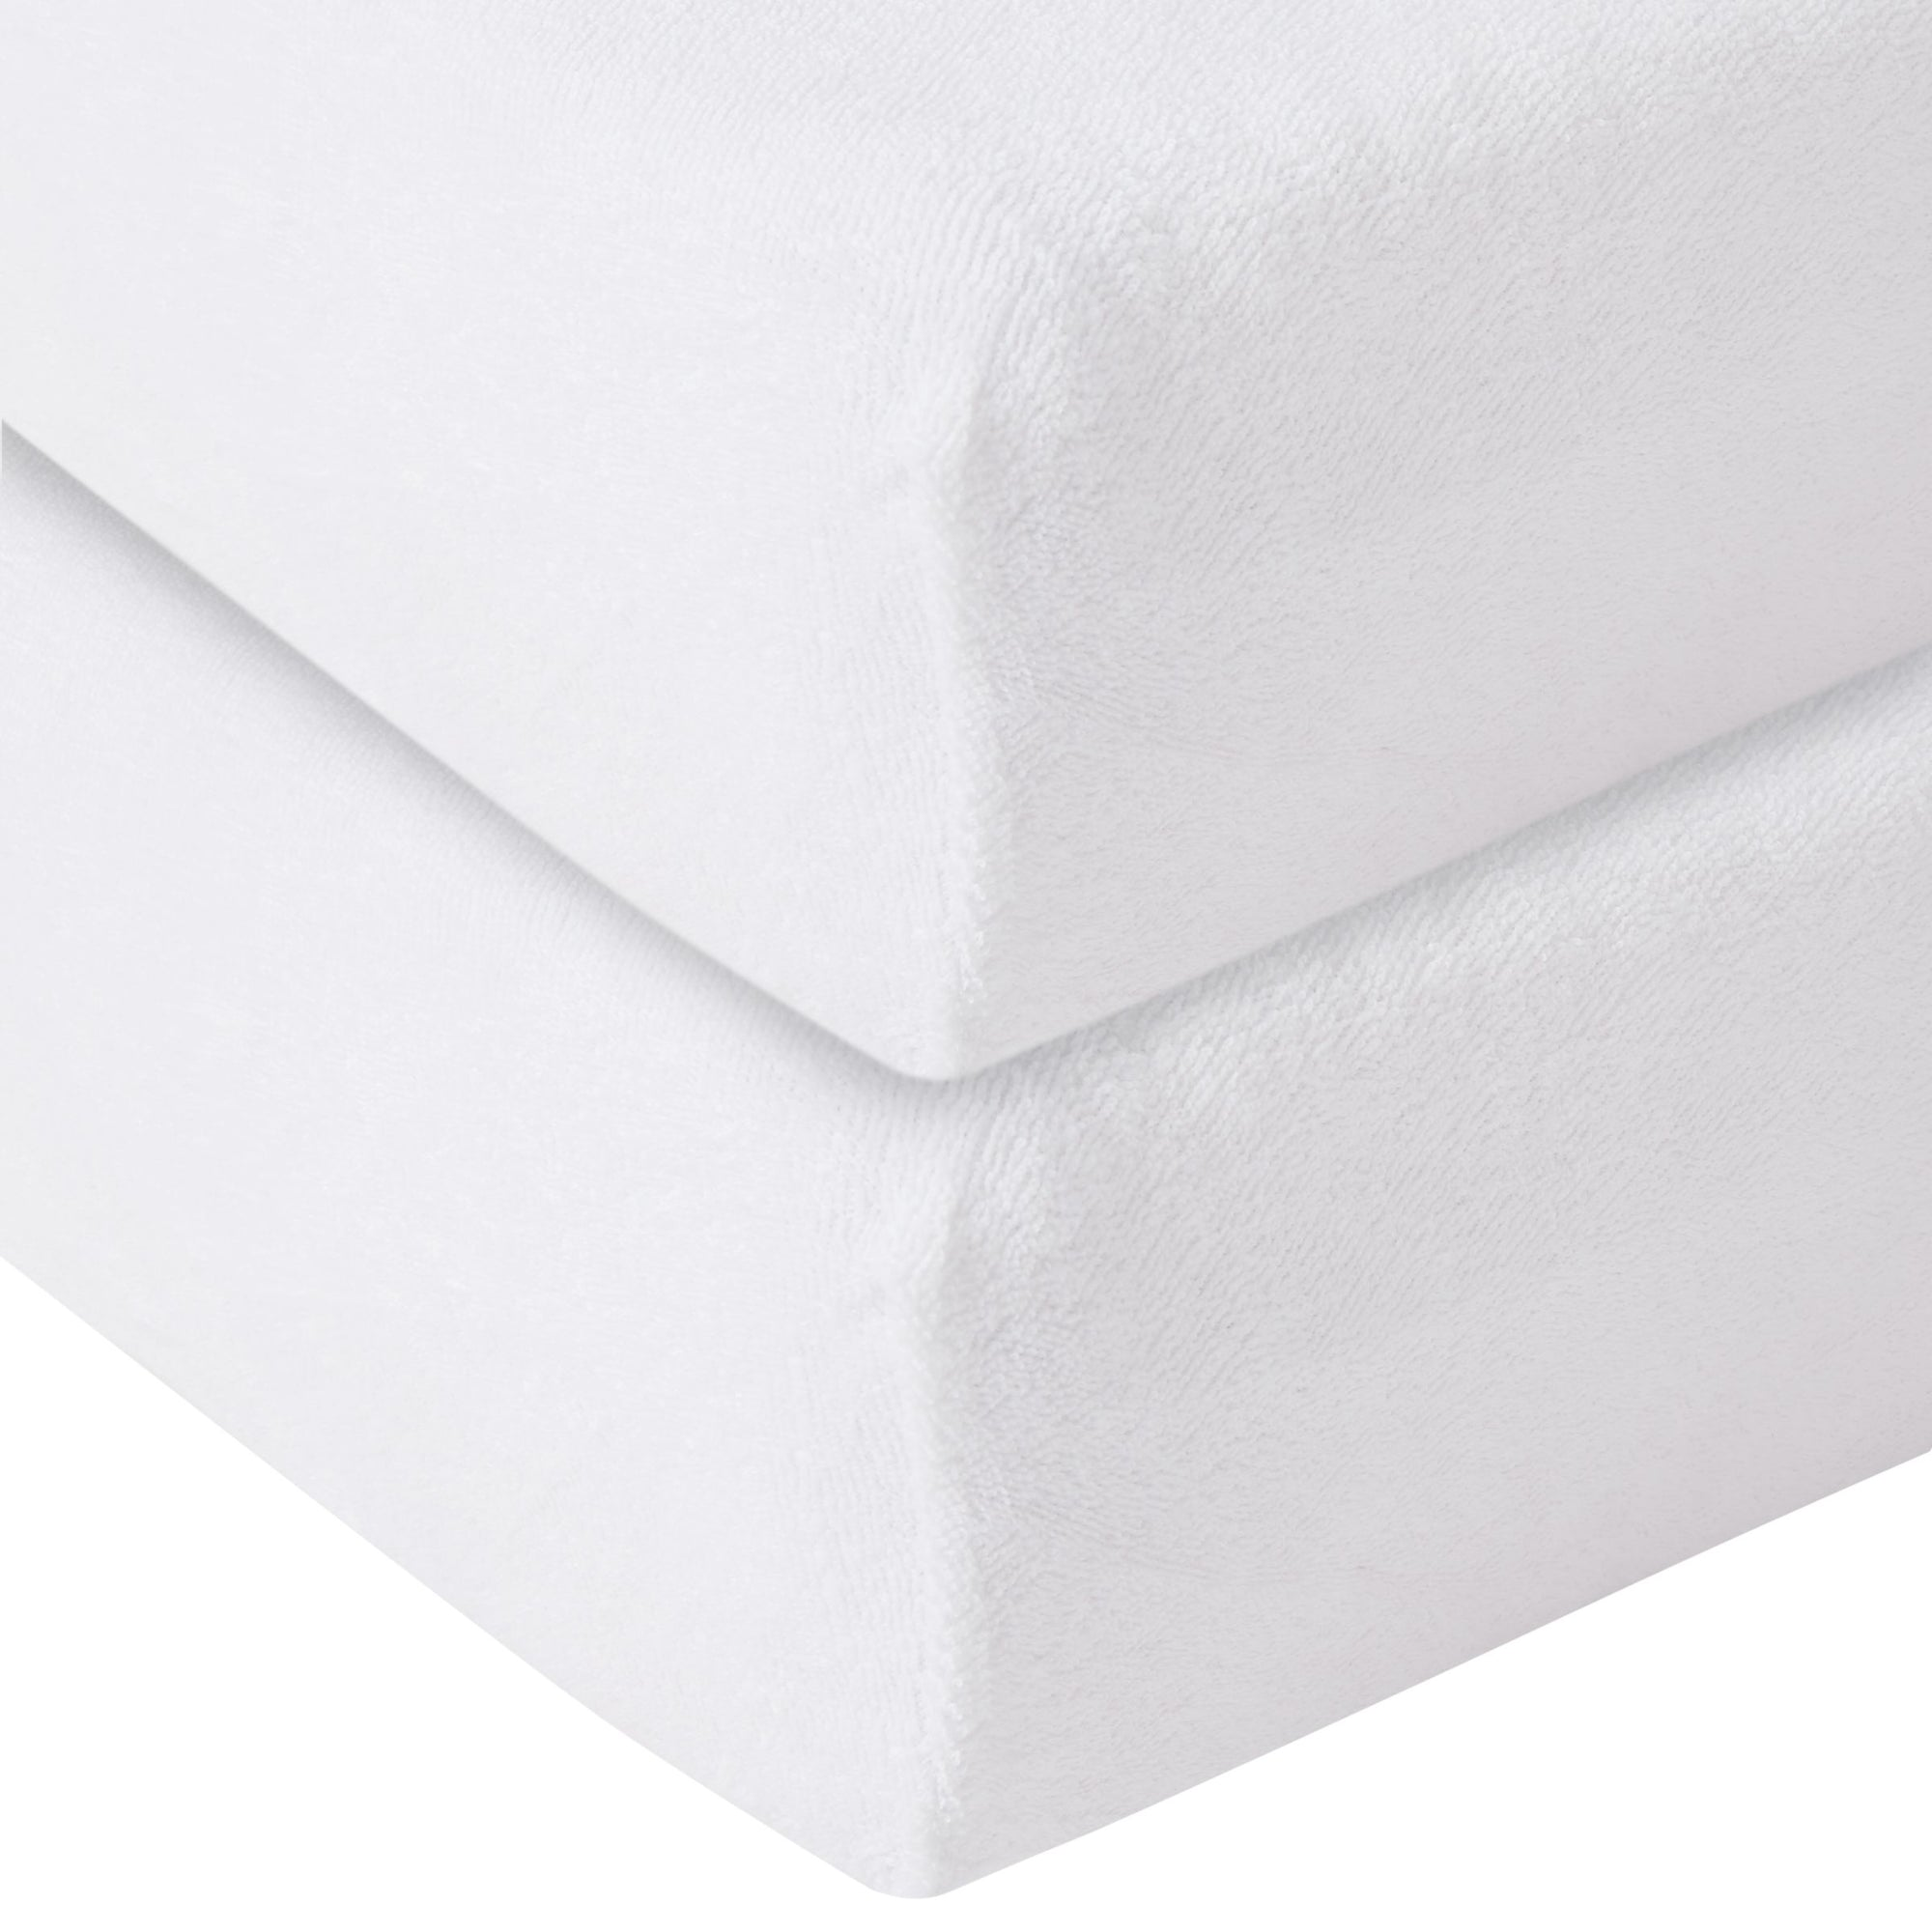 John Lewis & Partners Organic Cotton Fitted Terry Cot Sheet, Pack of 2, White